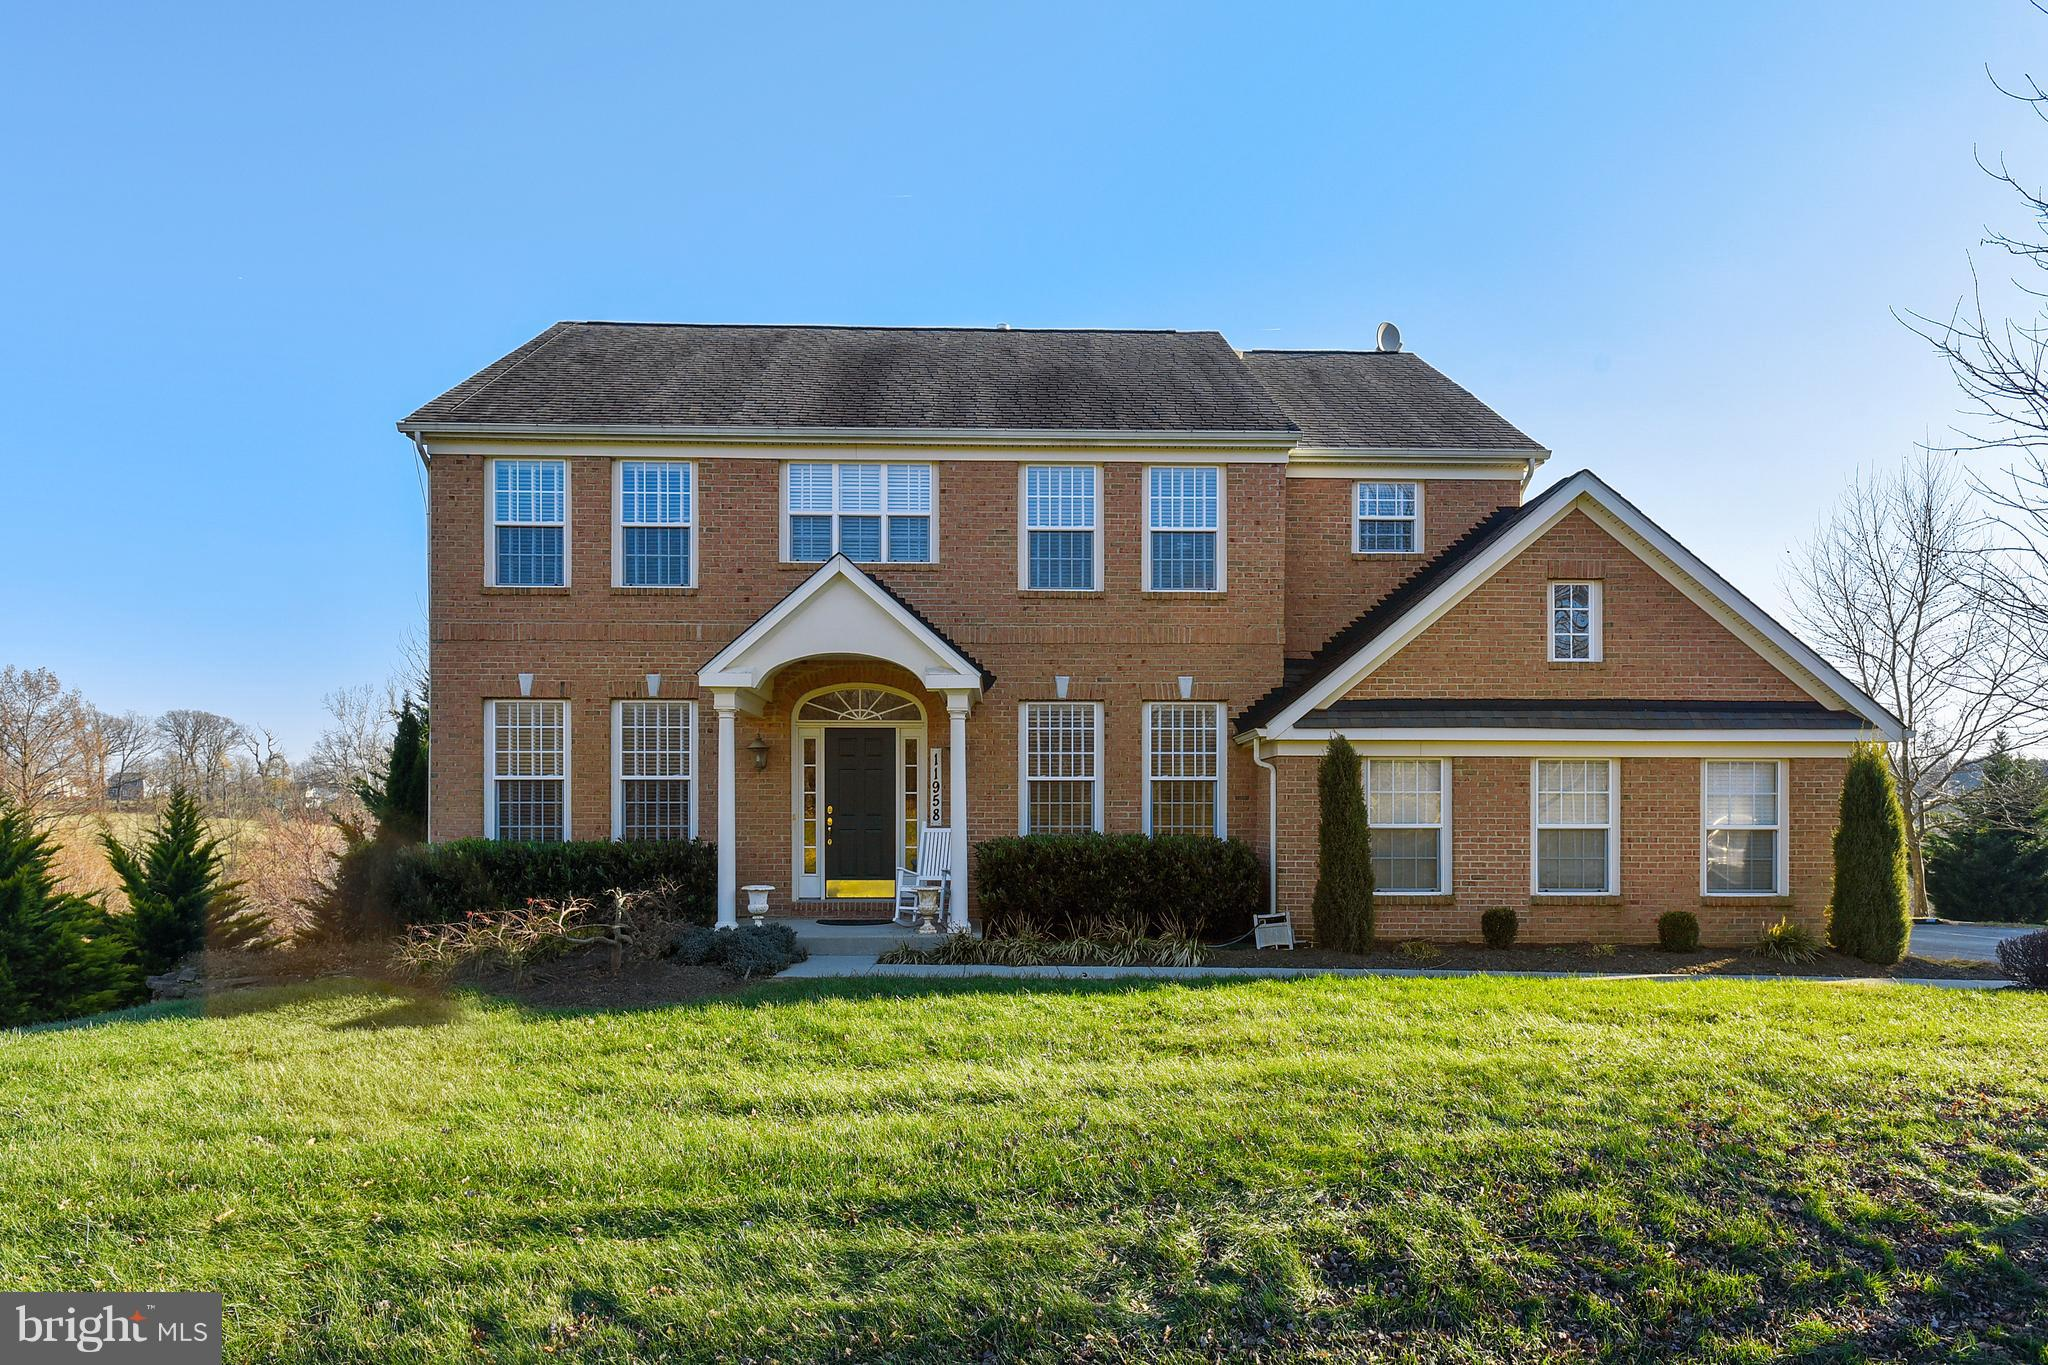 11958 CYPRESS KNOLL LANE, LOVETTSVILLE, VA 20180